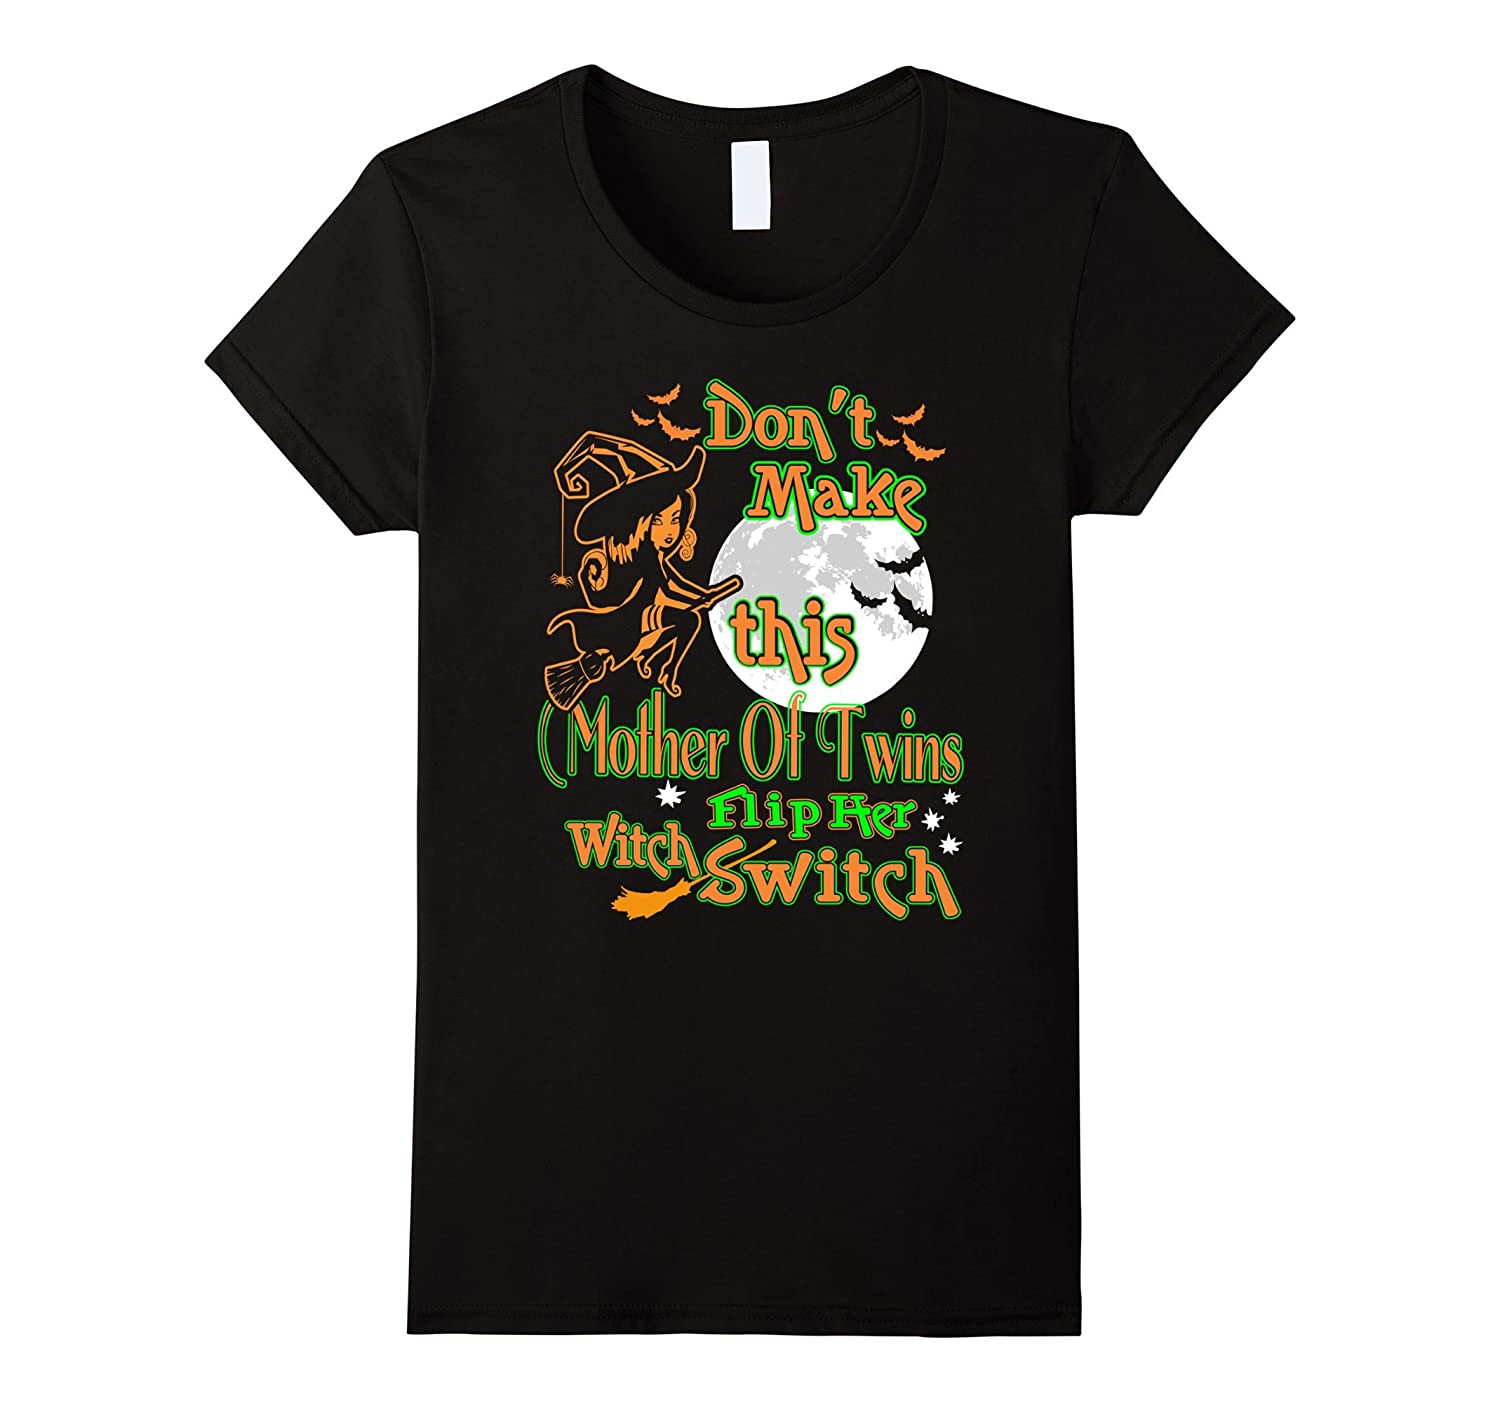 Womens Mother Of Twins Flip Her Witch Switch Halloween Tshirt-FL